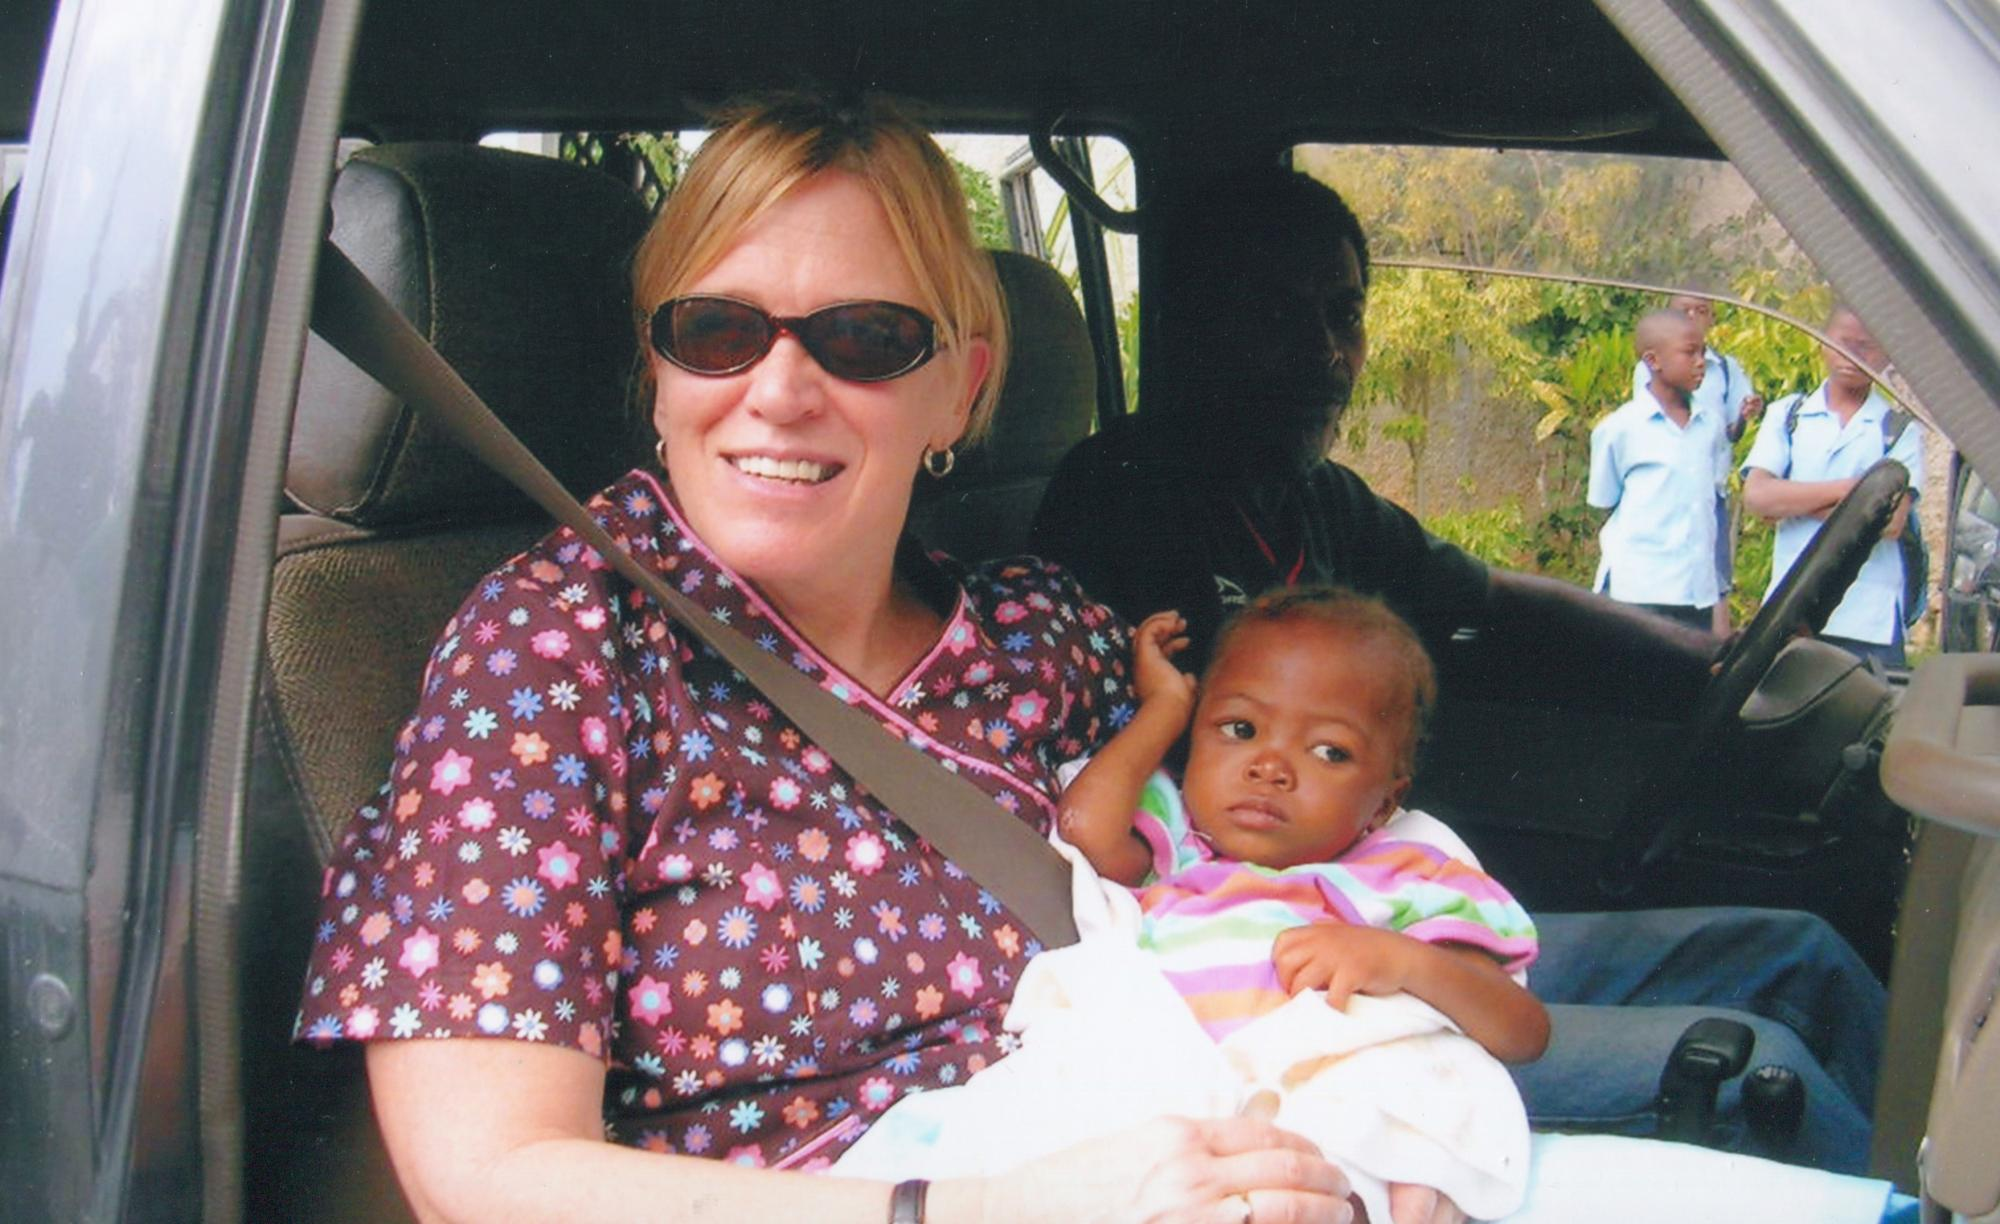 Jane_with_infant_and_driver__circa_2001___image16.jpg